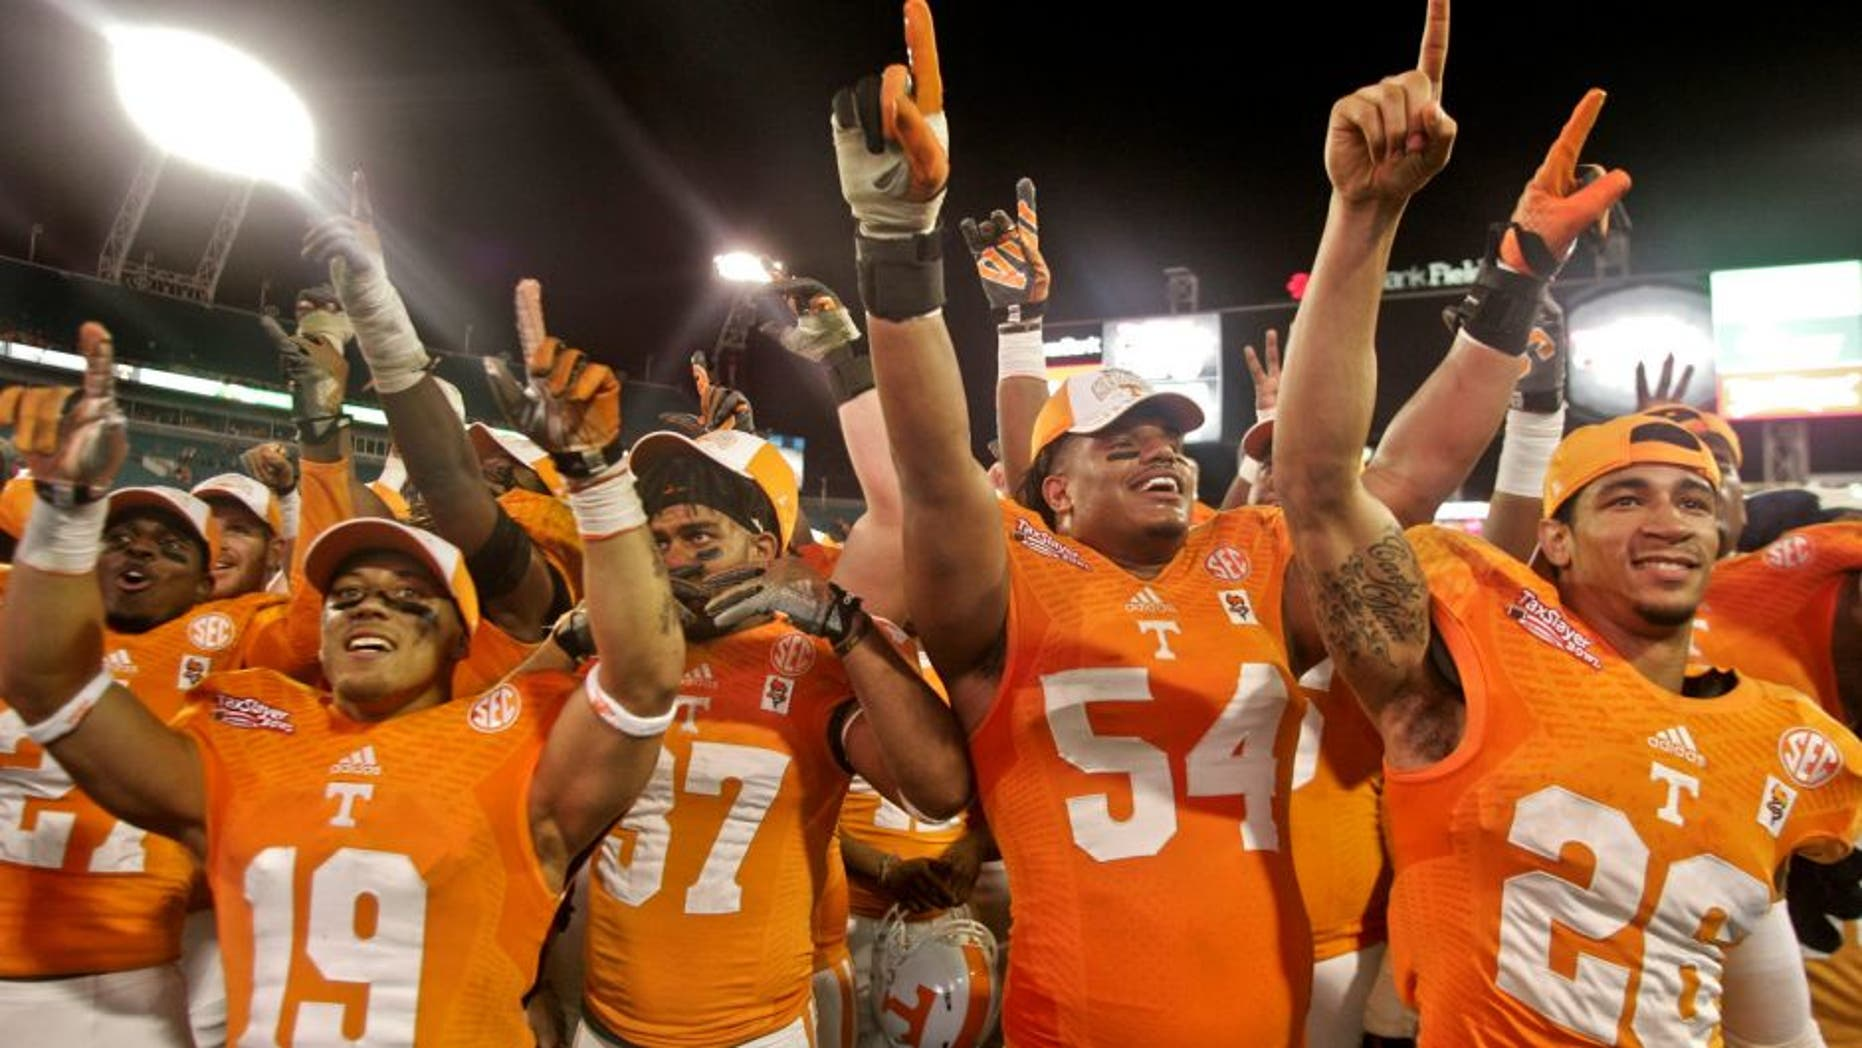 Jan 2, 2015; Jacksonville, FL, USA; Tennessee Volunteers running back Devrin Young (19) and defensive back Brian Randolph (37) and defensive tackle Jordan Williams (54) and defensive back Geraldo Orta (26) celebrate with fans after their 2015 TaxSlayer Bowl game against the Iowa Hawkeyes at EverBank Field. The Tennessee Volunteers beat the Iowa Hawkeyes 45-28. Mandatory Credit: Phil Sears-USA TODAY Sports